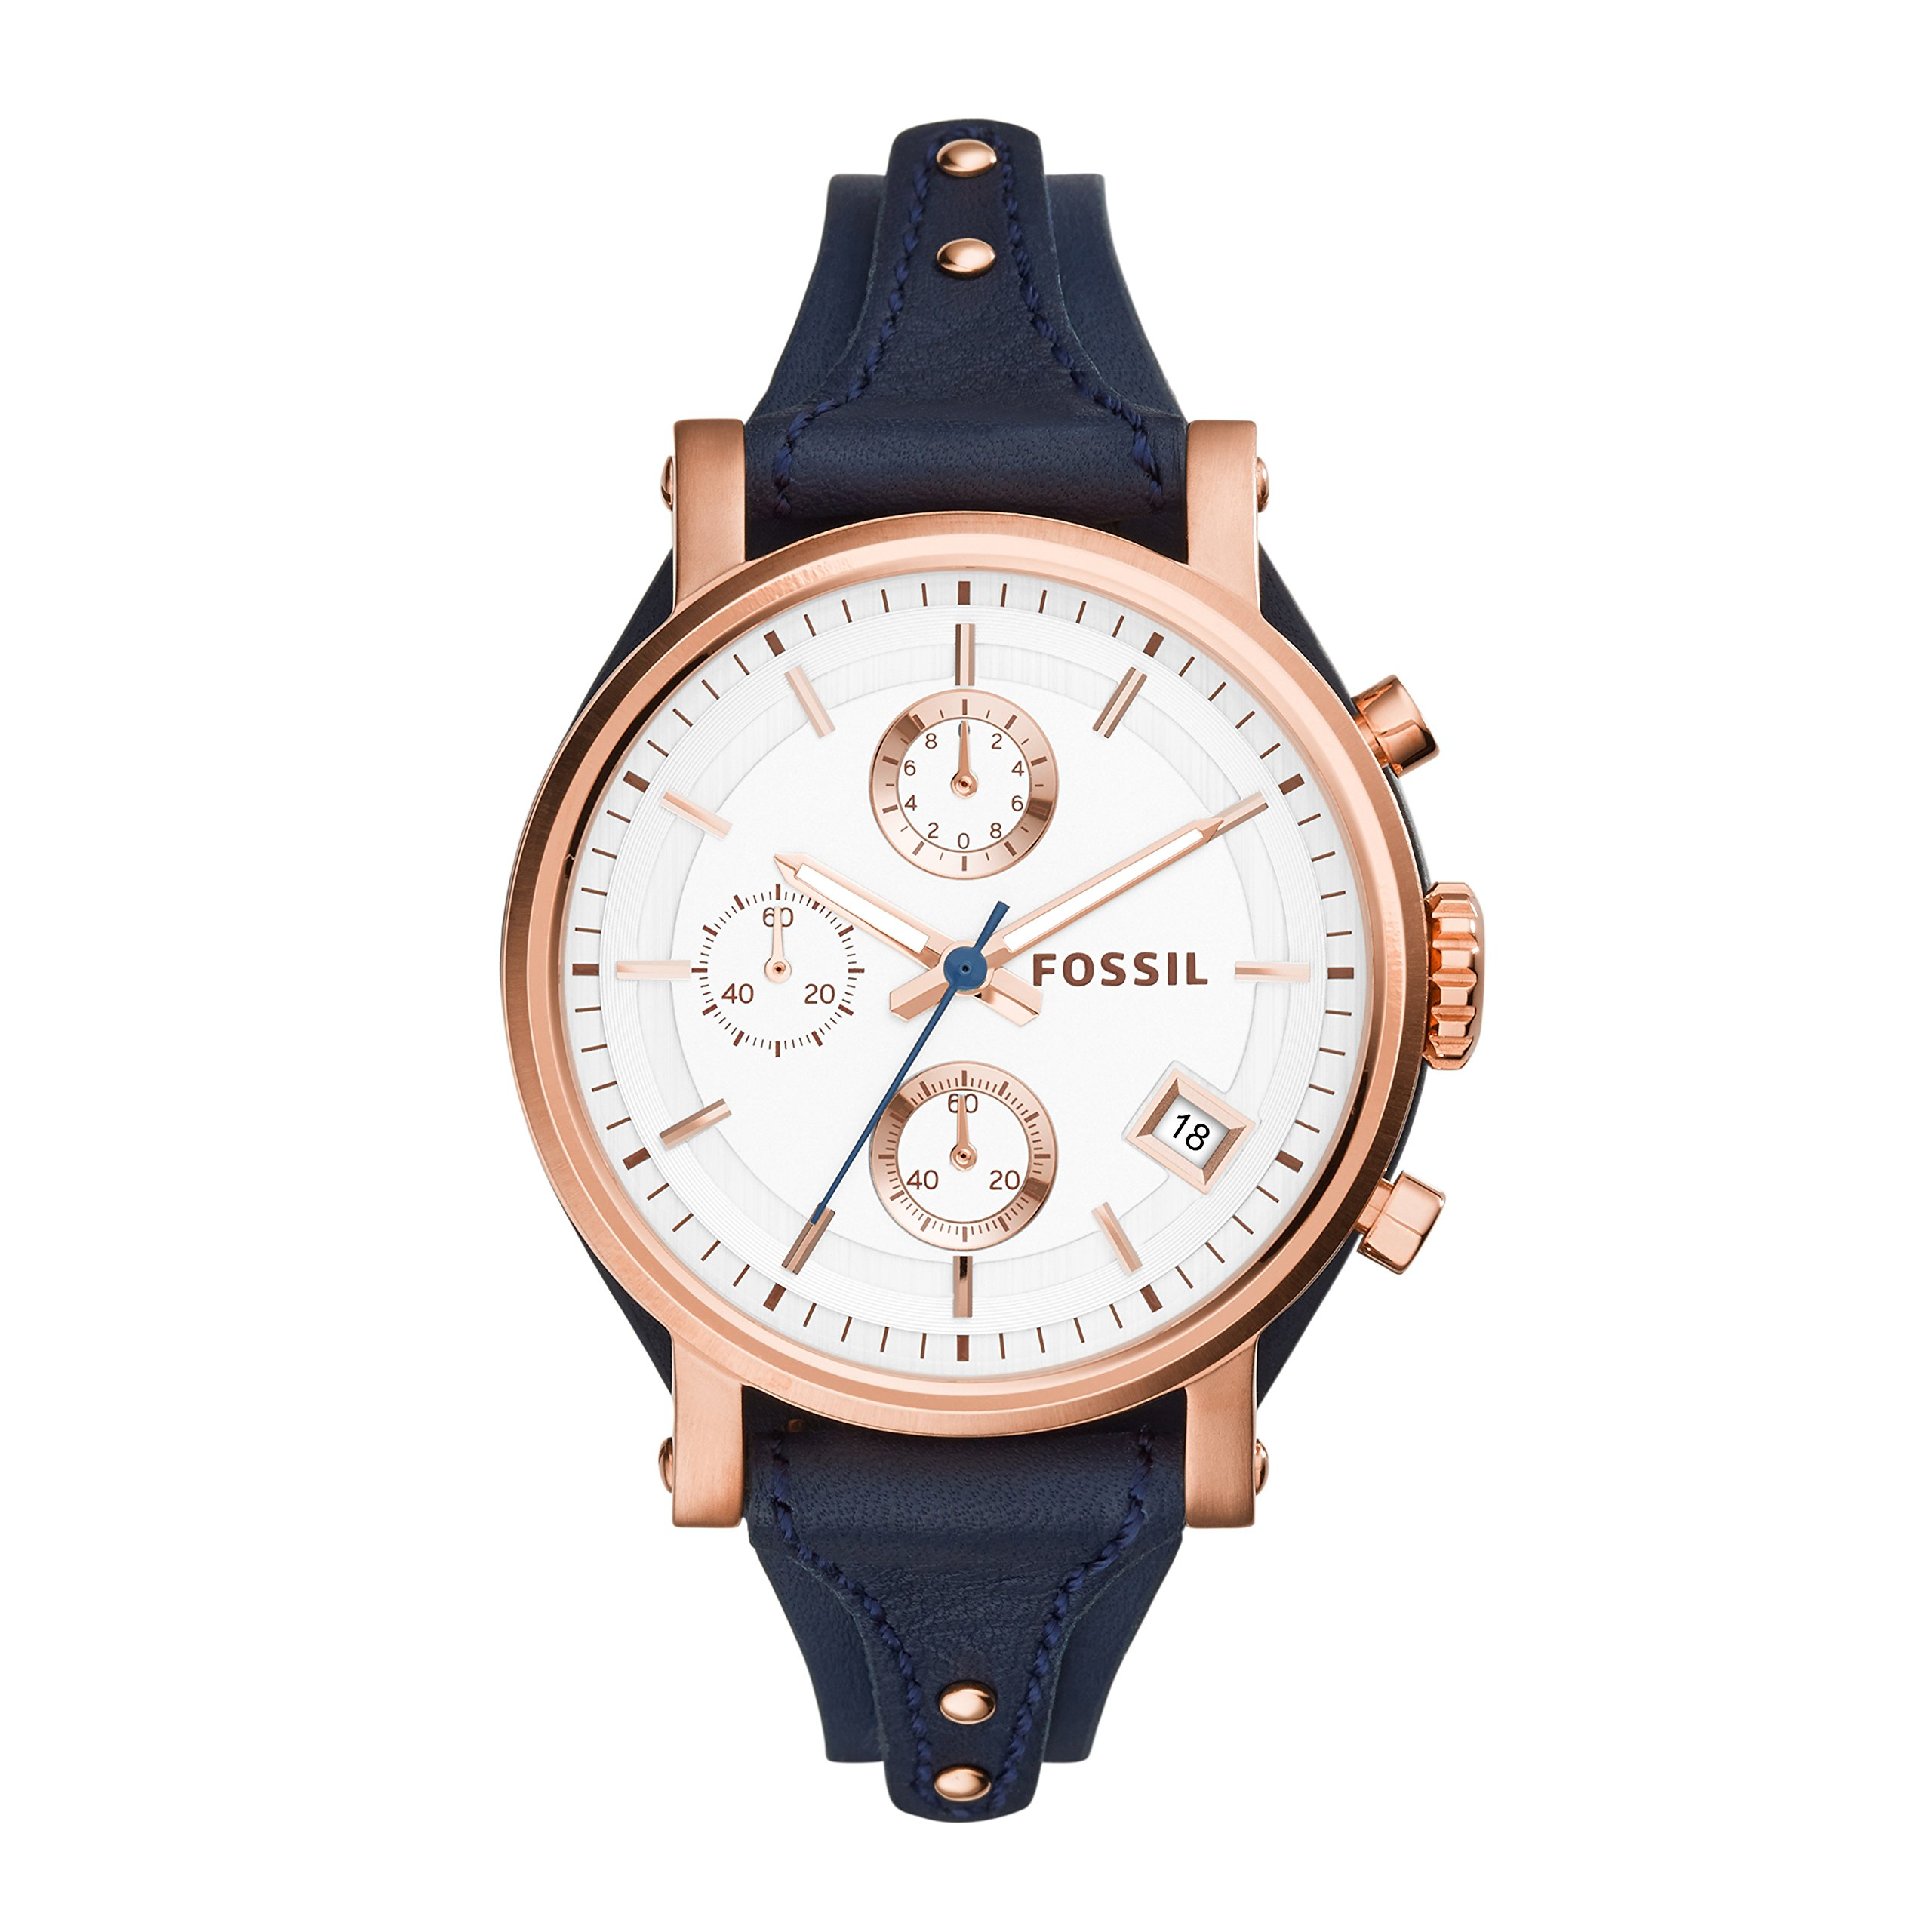 Fossil Women's Original Boyfriend Quartz Stainless Steel and Leather Chronograph Watch, Color: Rose Gold-Tone, Blue (Model: ES3838) by Fossil